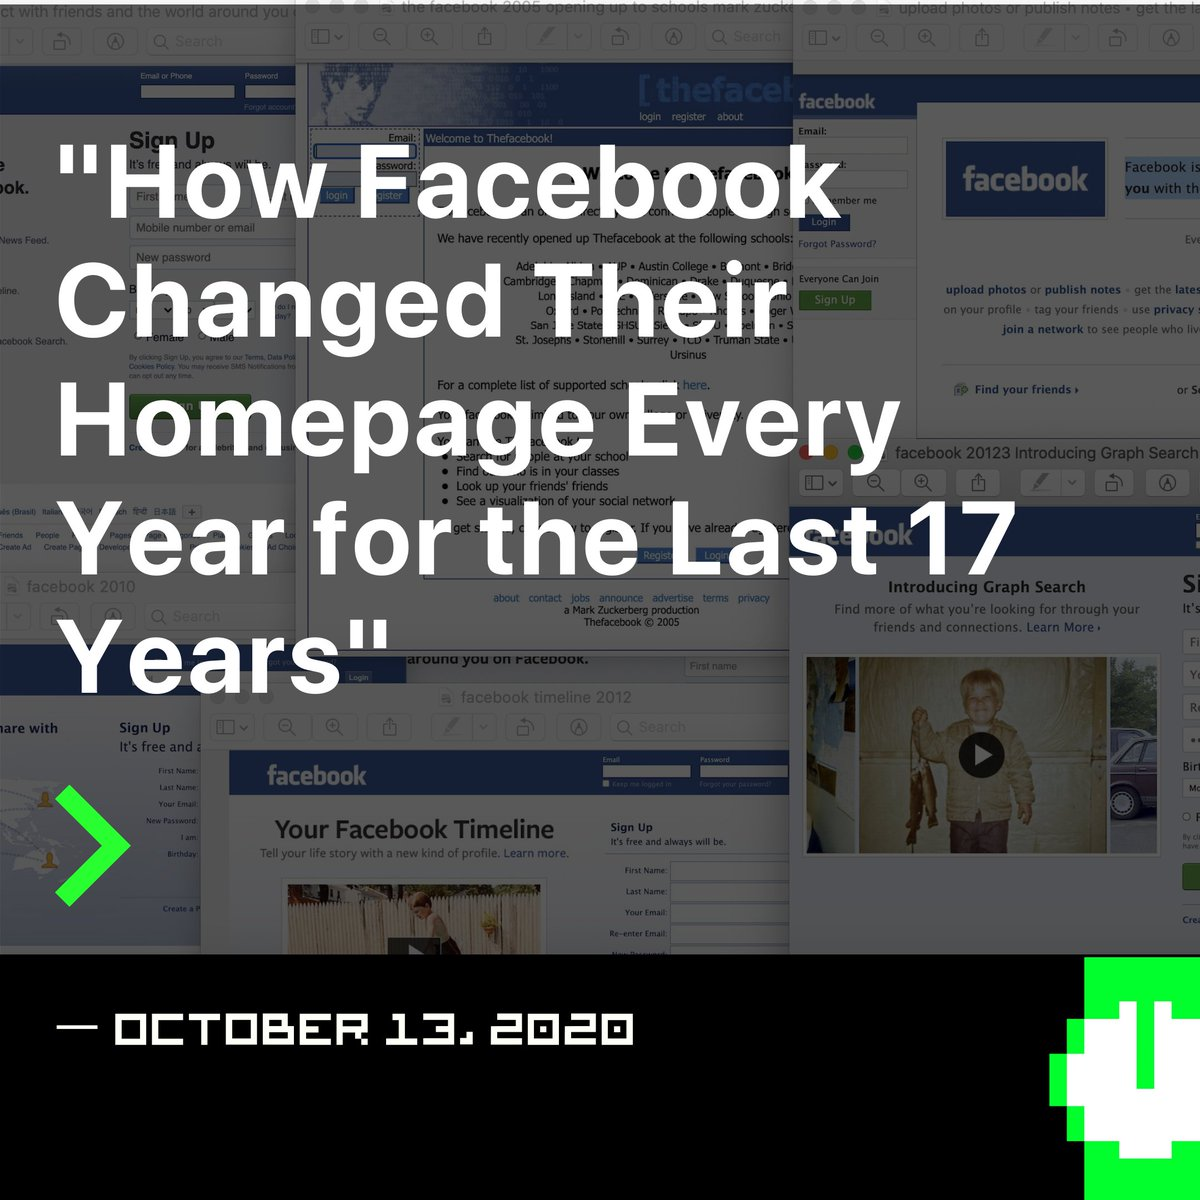 🆕HACKER NOON TOP STORY >>How Facebook Changed Their Homepage Every Year for the Last 17 Years  #StoryOfTheDay #facebook #facebookdesign